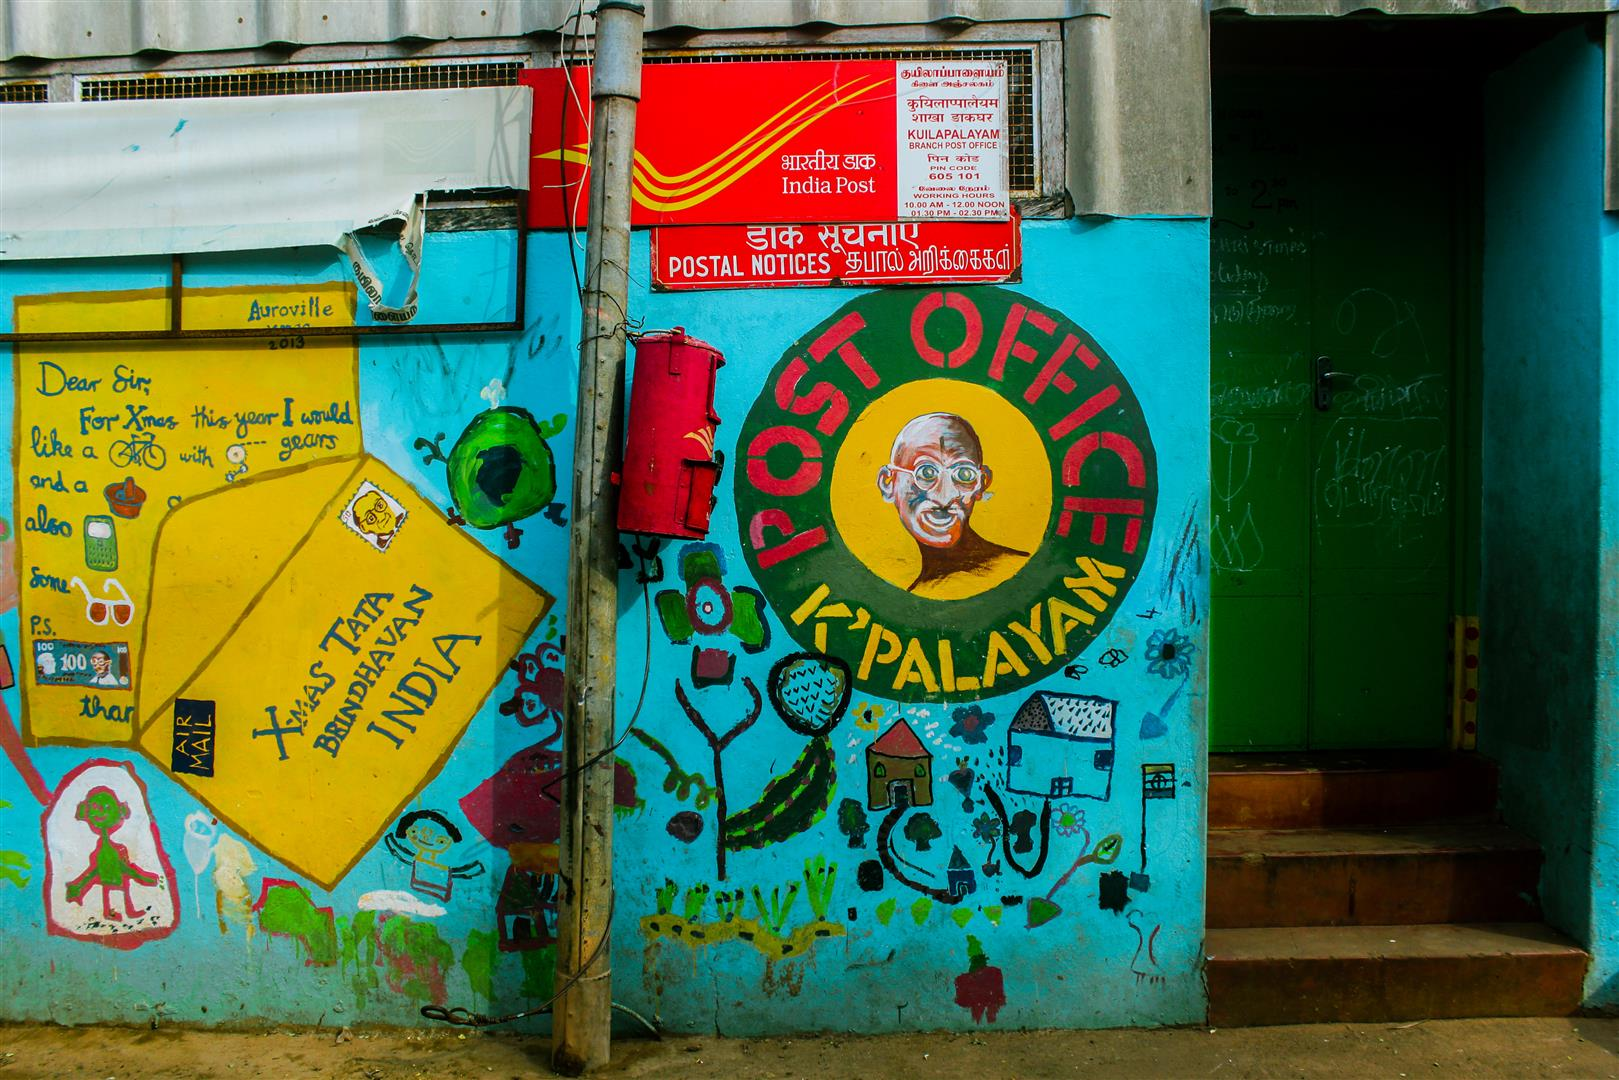 Funkiest post office in India